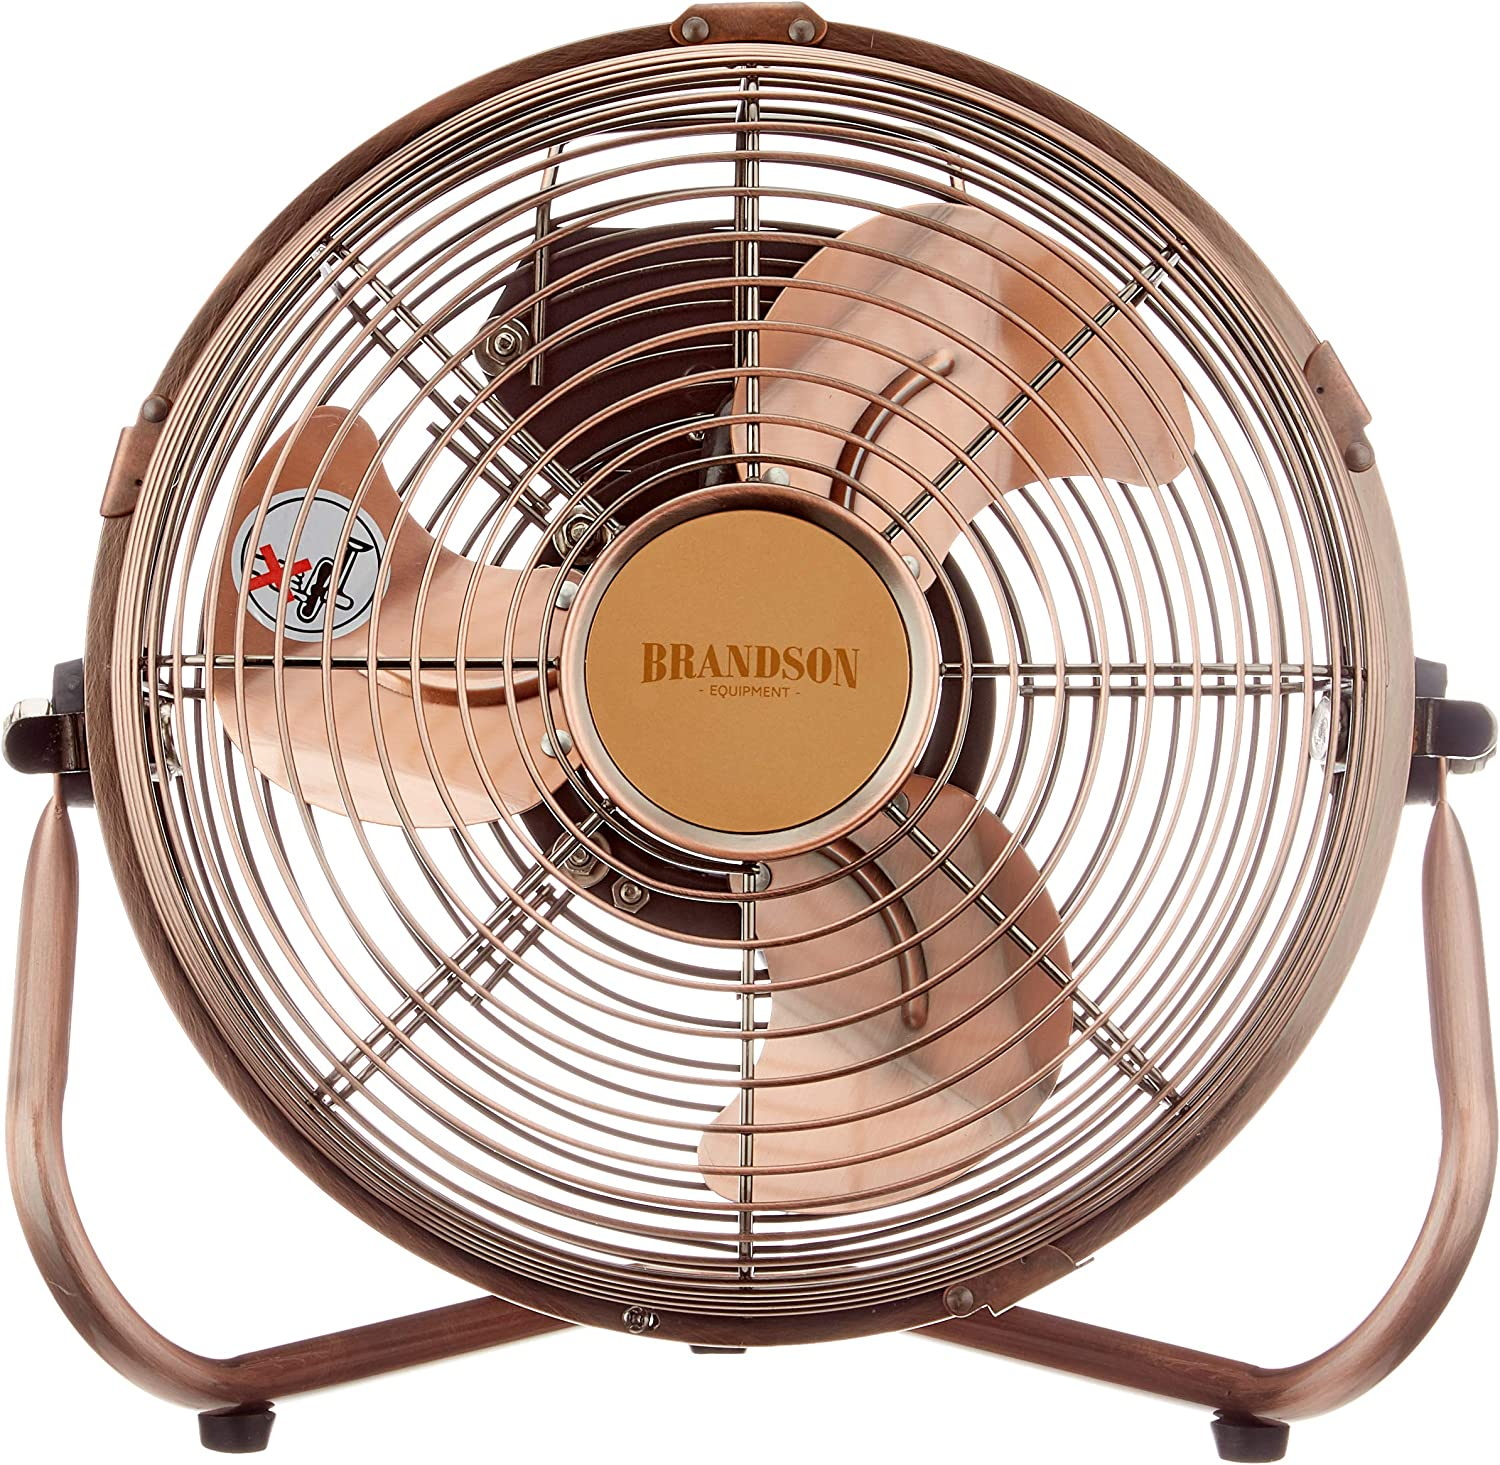 Brandson 7230339772 Ventilador, Cobre, 32 Watt: Amazon.es ...